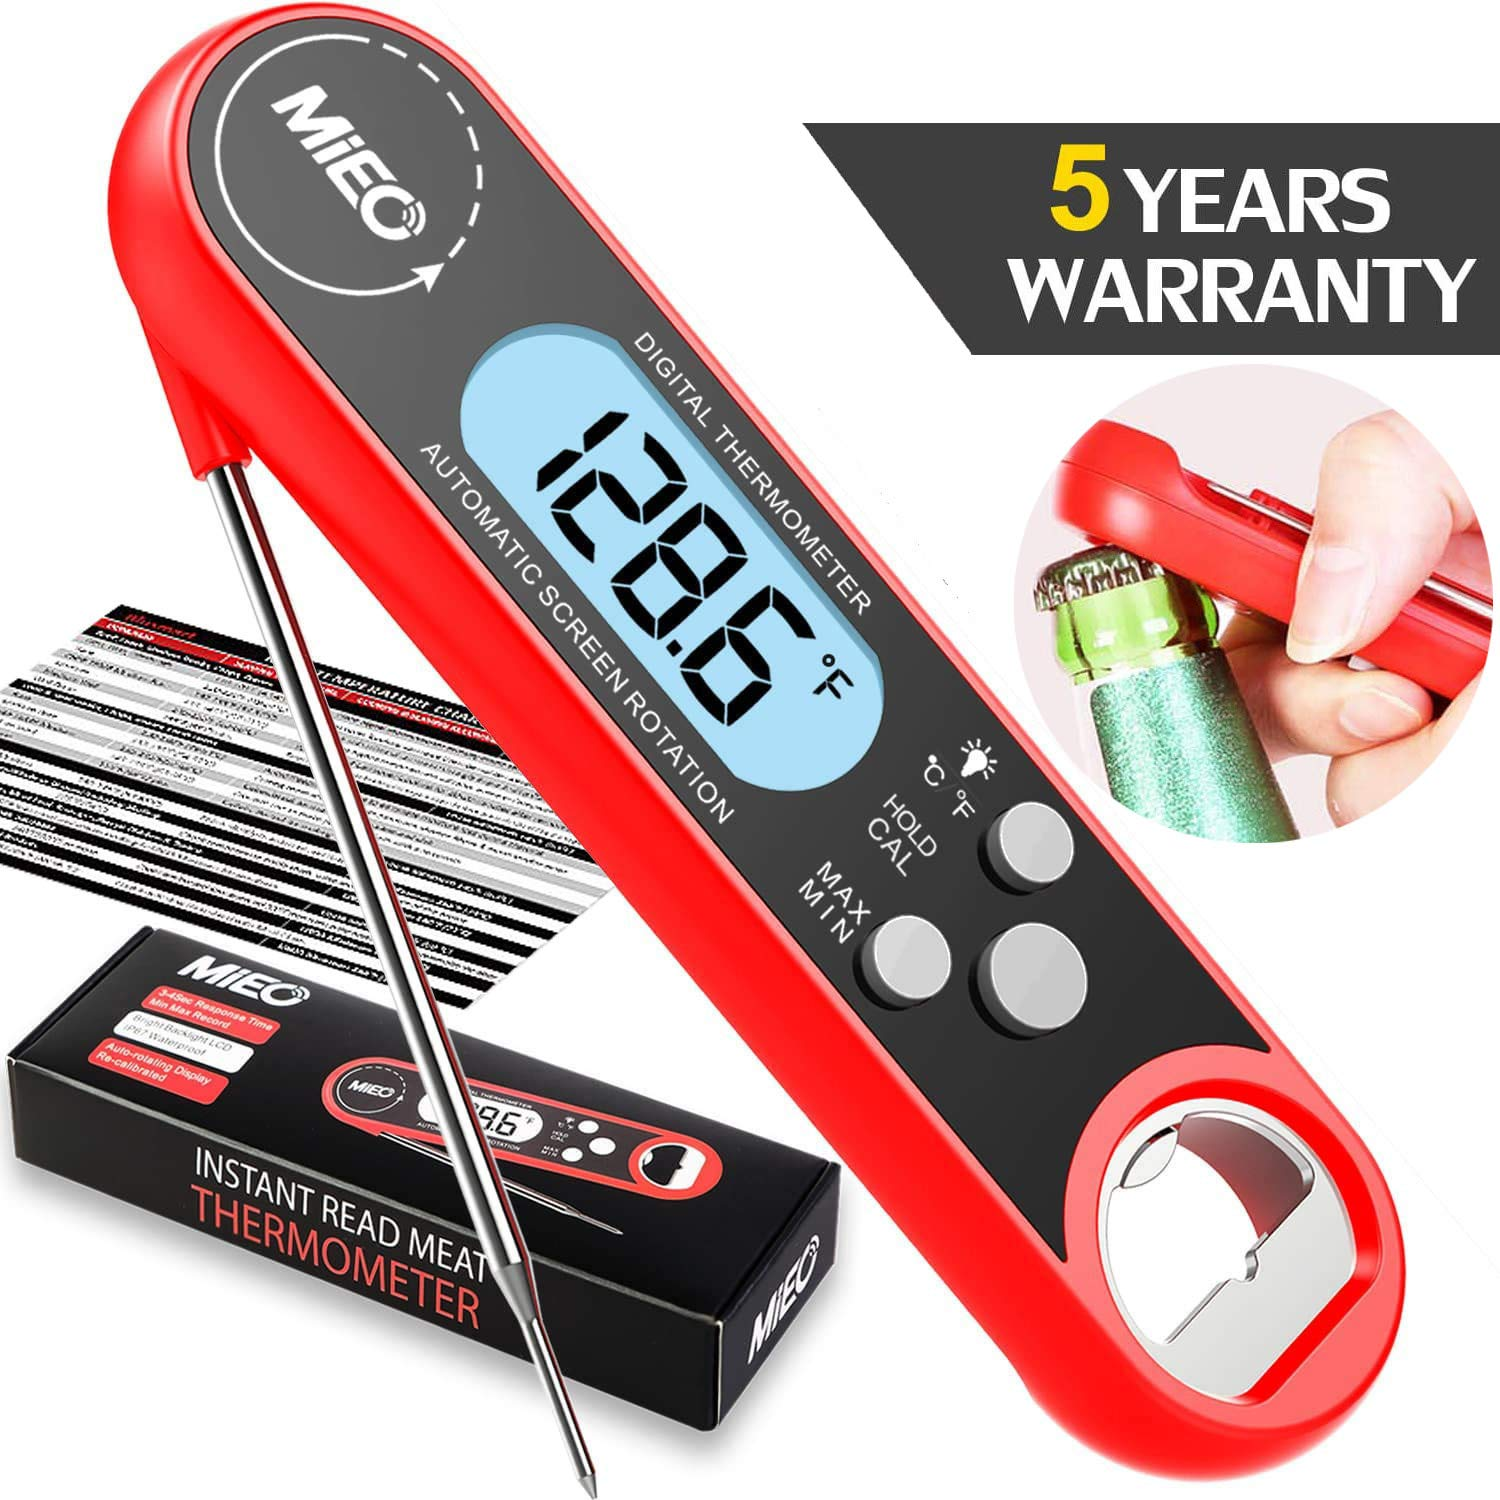 Digital Instant Read Meat Thermometer - MIEO Best Waterproof Ultra Fast Food Cooking Thermometer with Backlight&Cablibration,Digital BBQ Thermometer for Kitchen,Outdoor Cooking,Grill